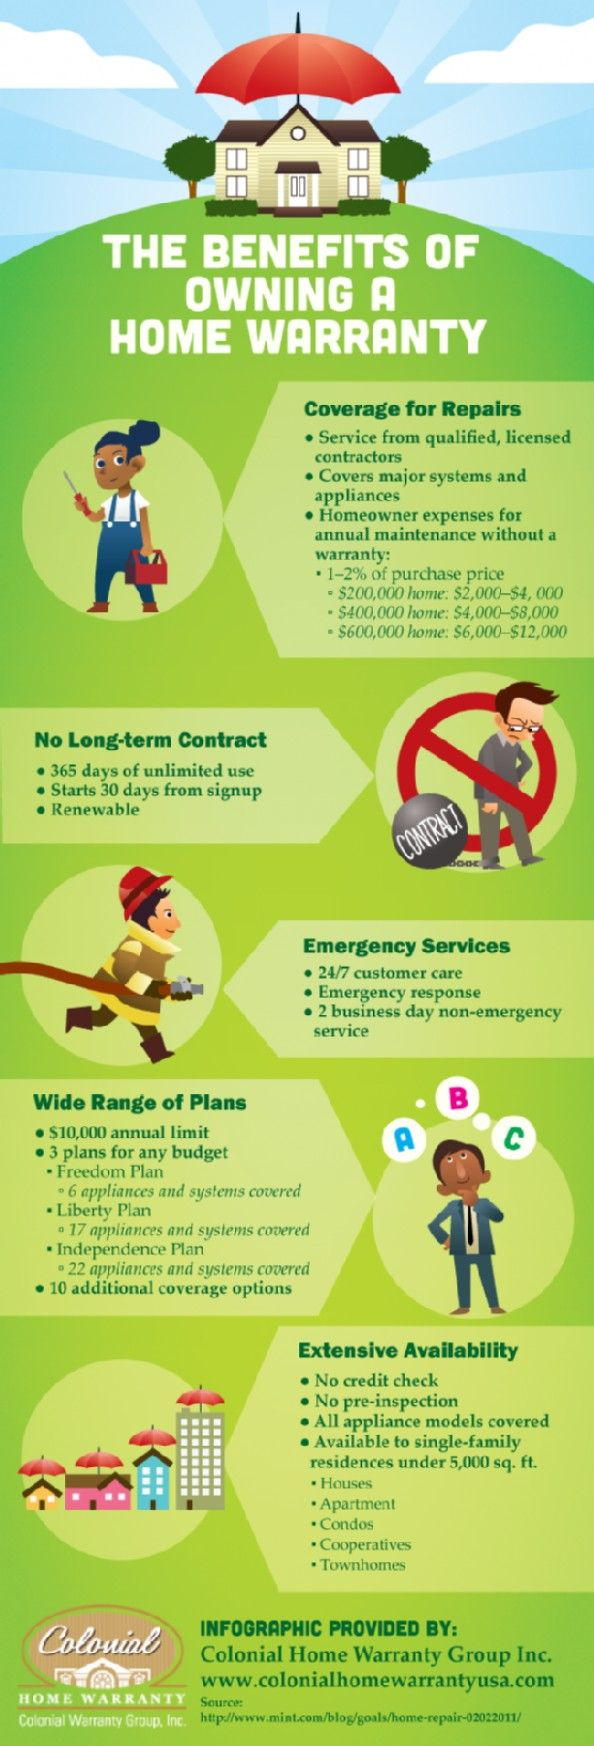 Benefits Of Owning A Home Warranty Infographic Home Warranty Home Warranty Plans Home Buying Tips